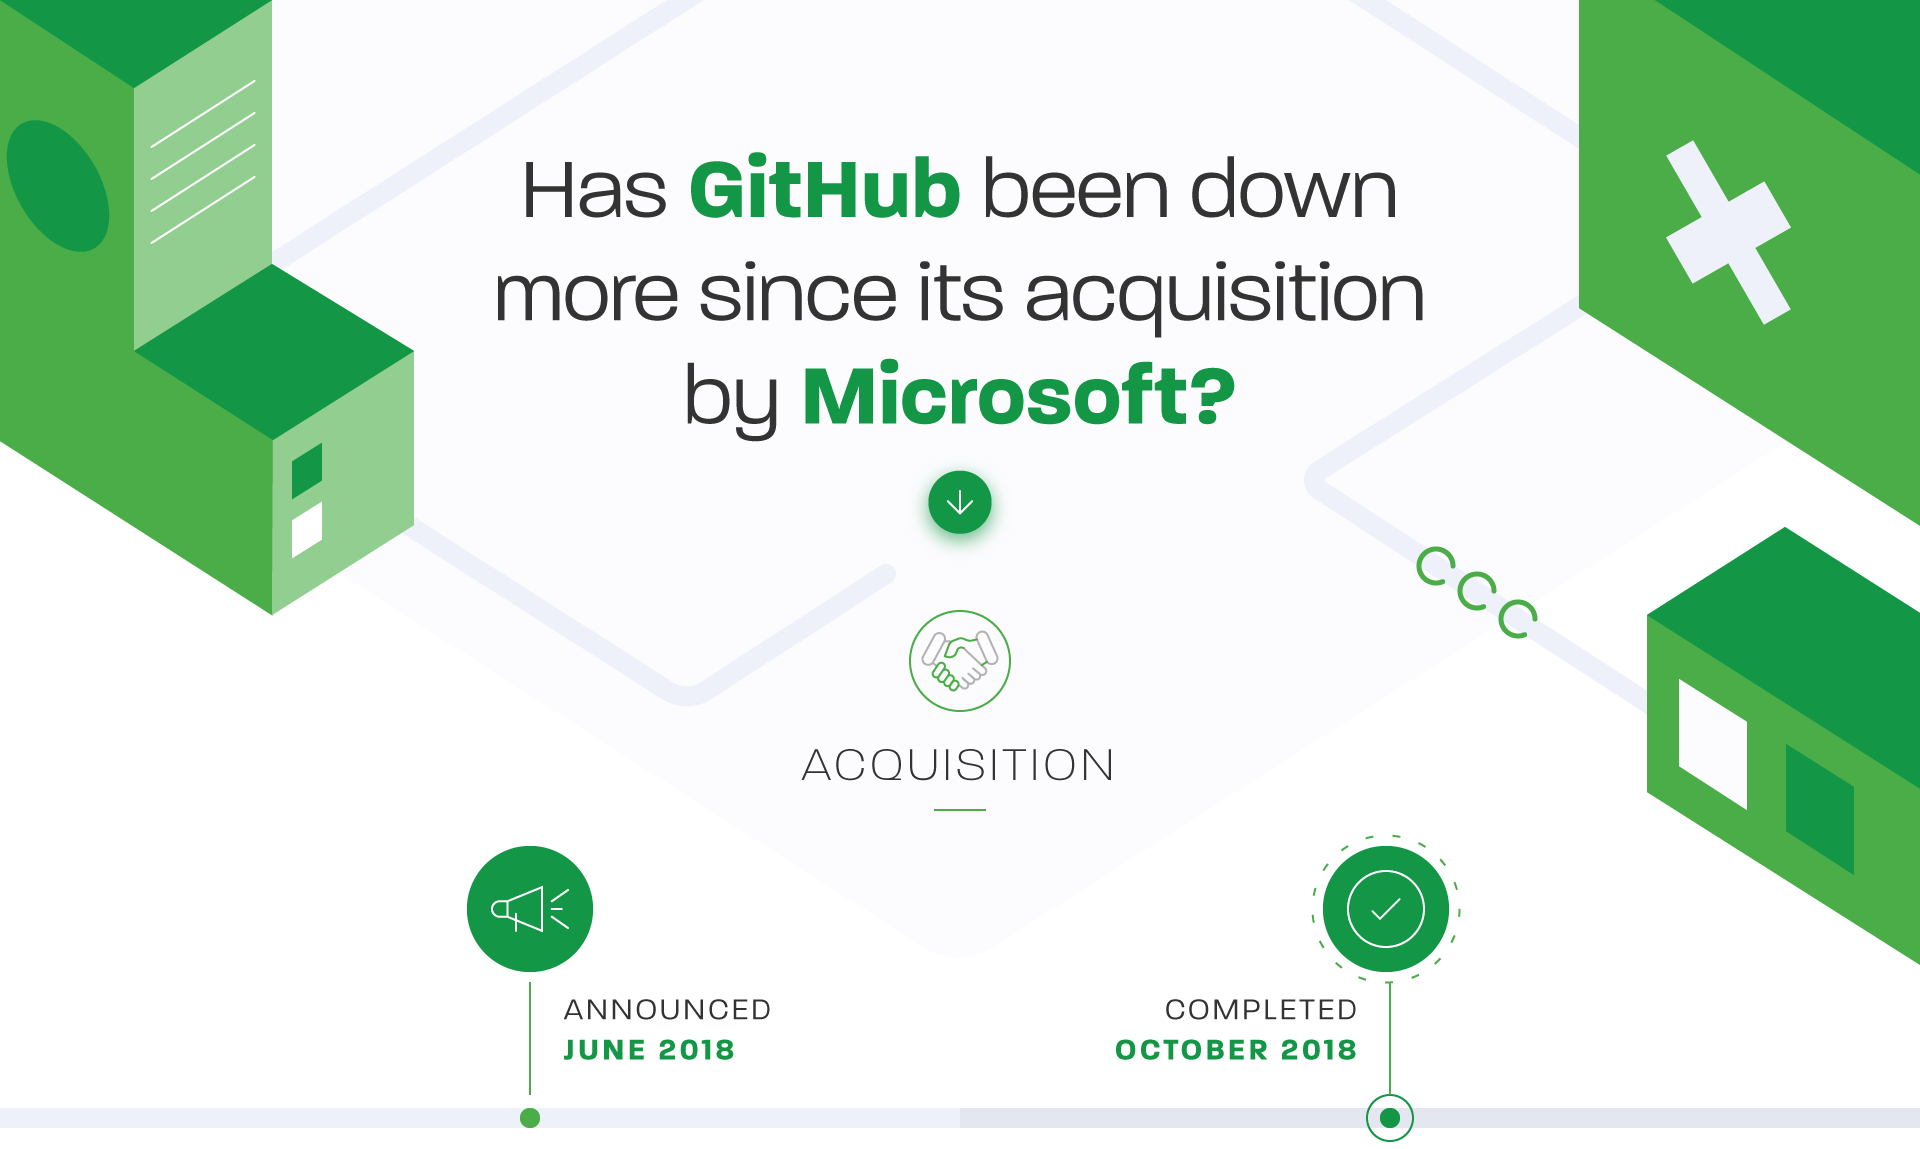 Has GitHub been down more since its acquisition by Microsoft? - RapidAPI